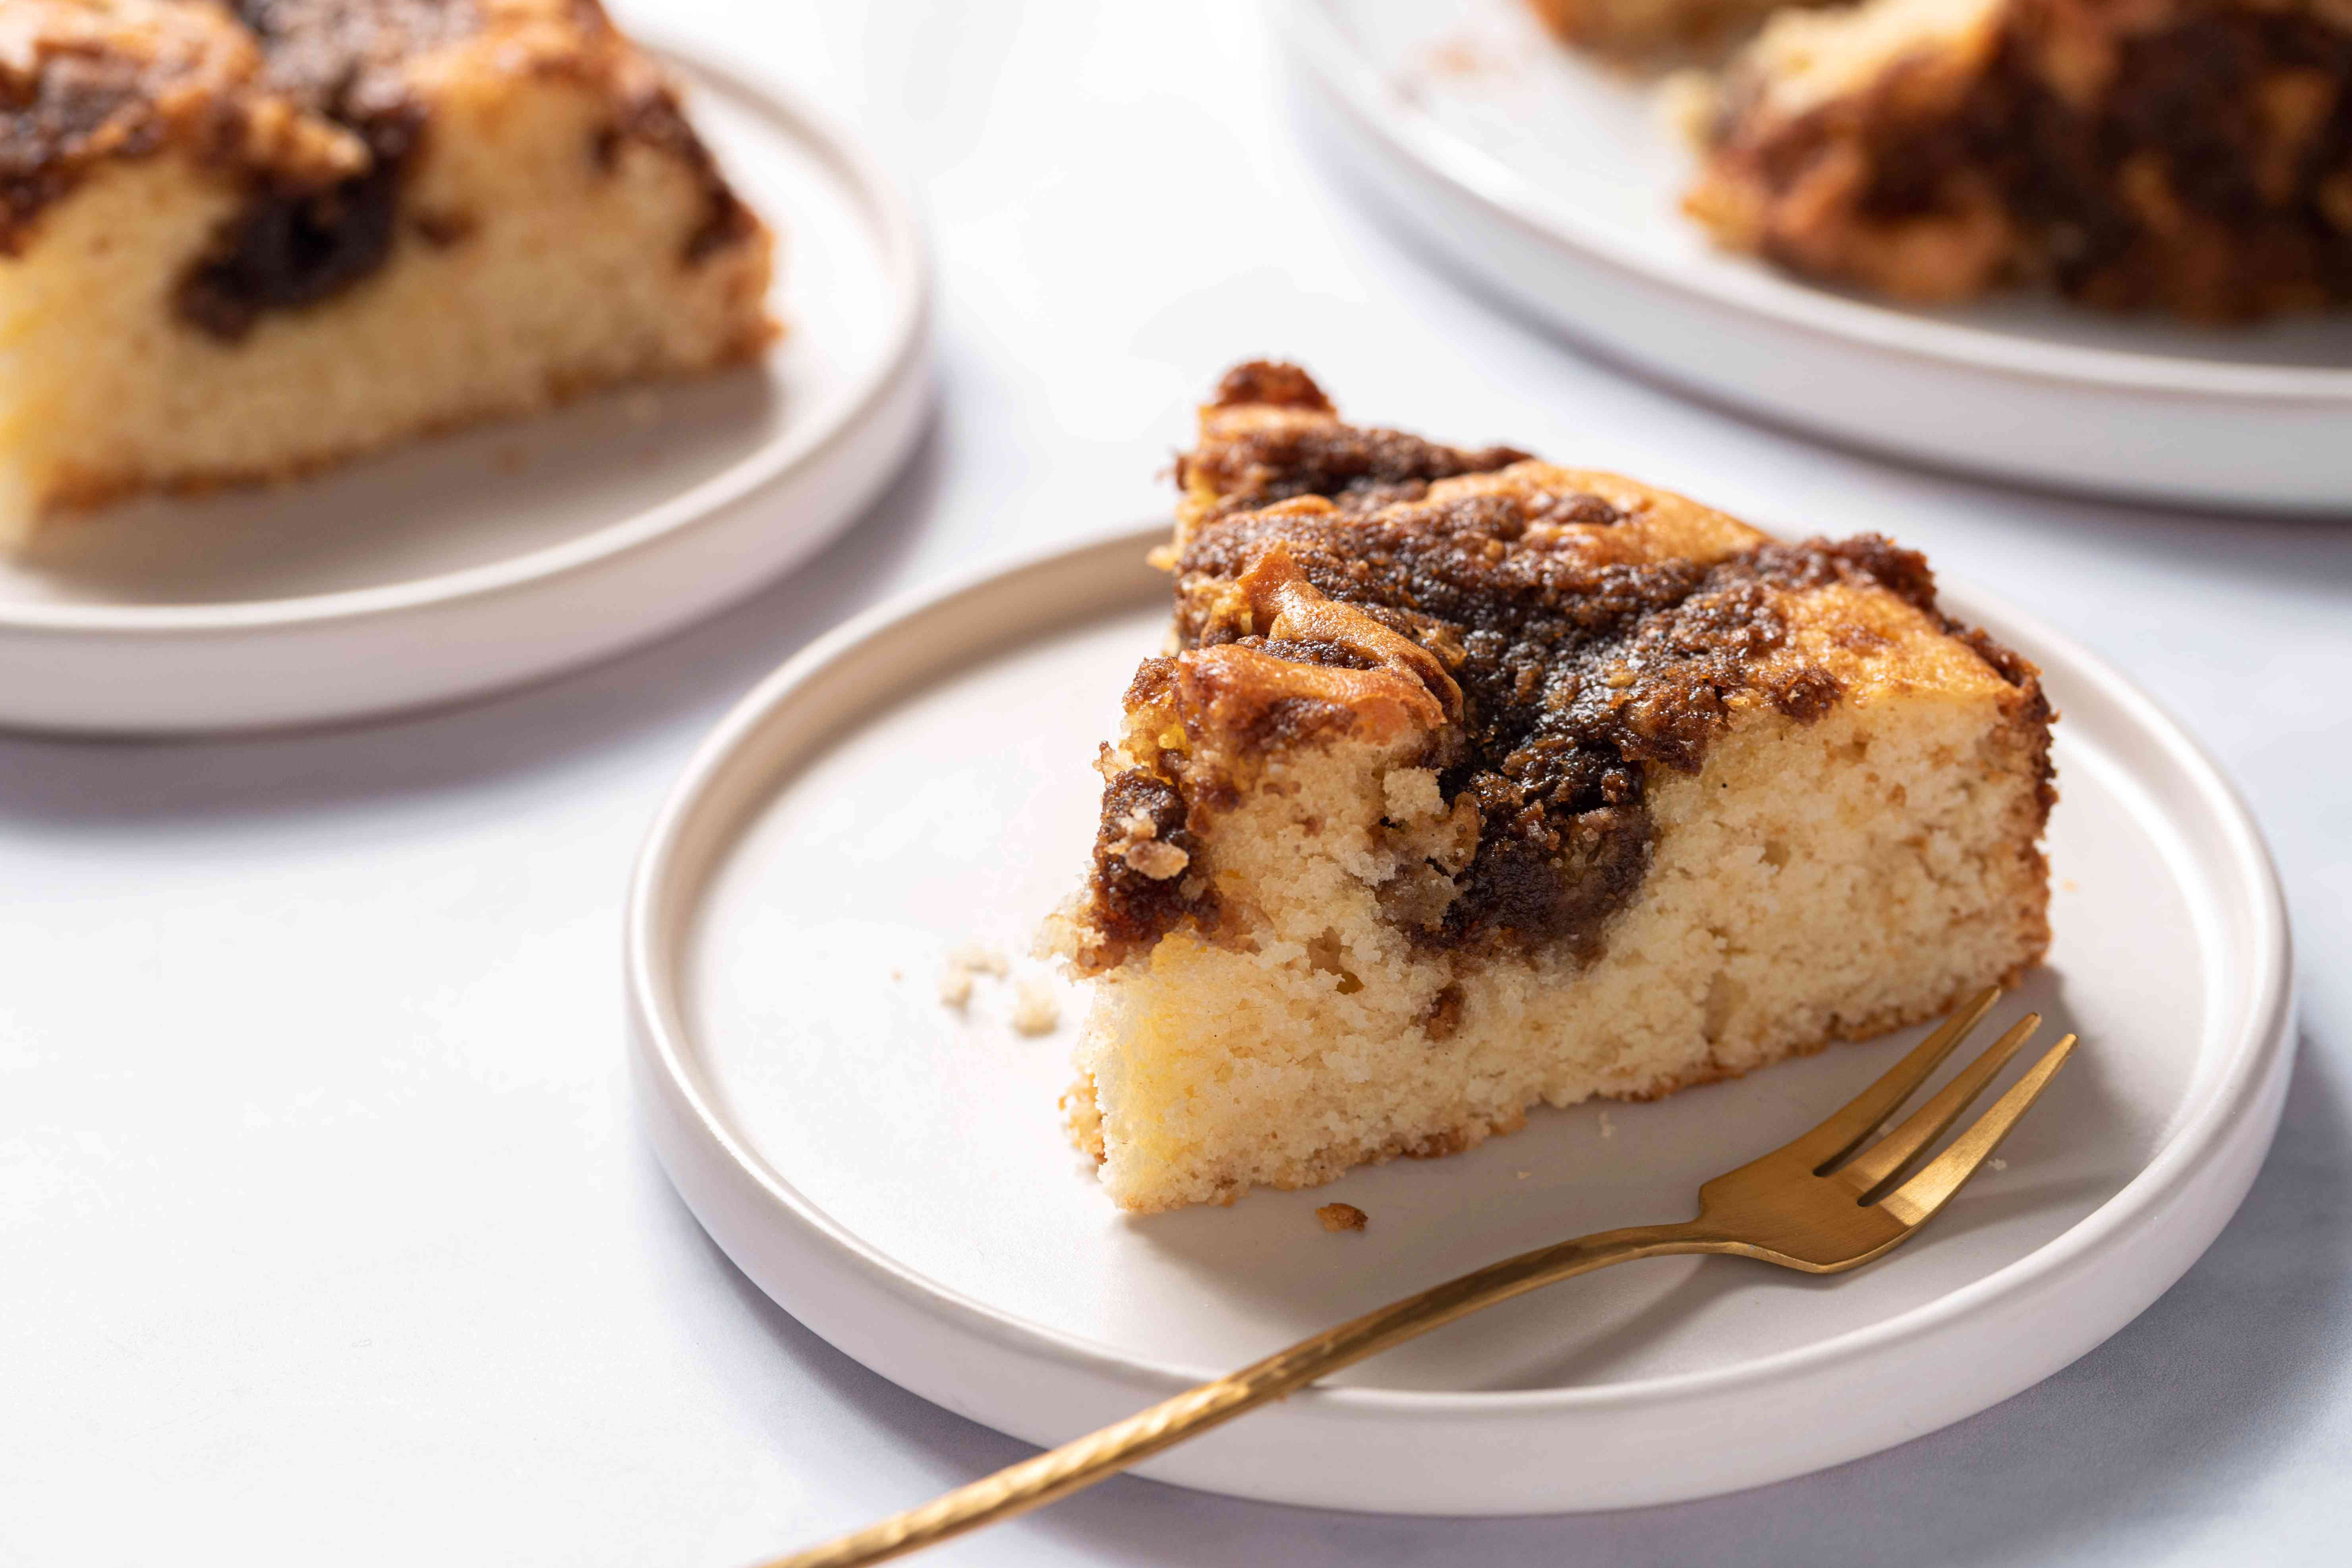 Coffee Cake With Brown Sugar and Cinnamon Streusel Topping